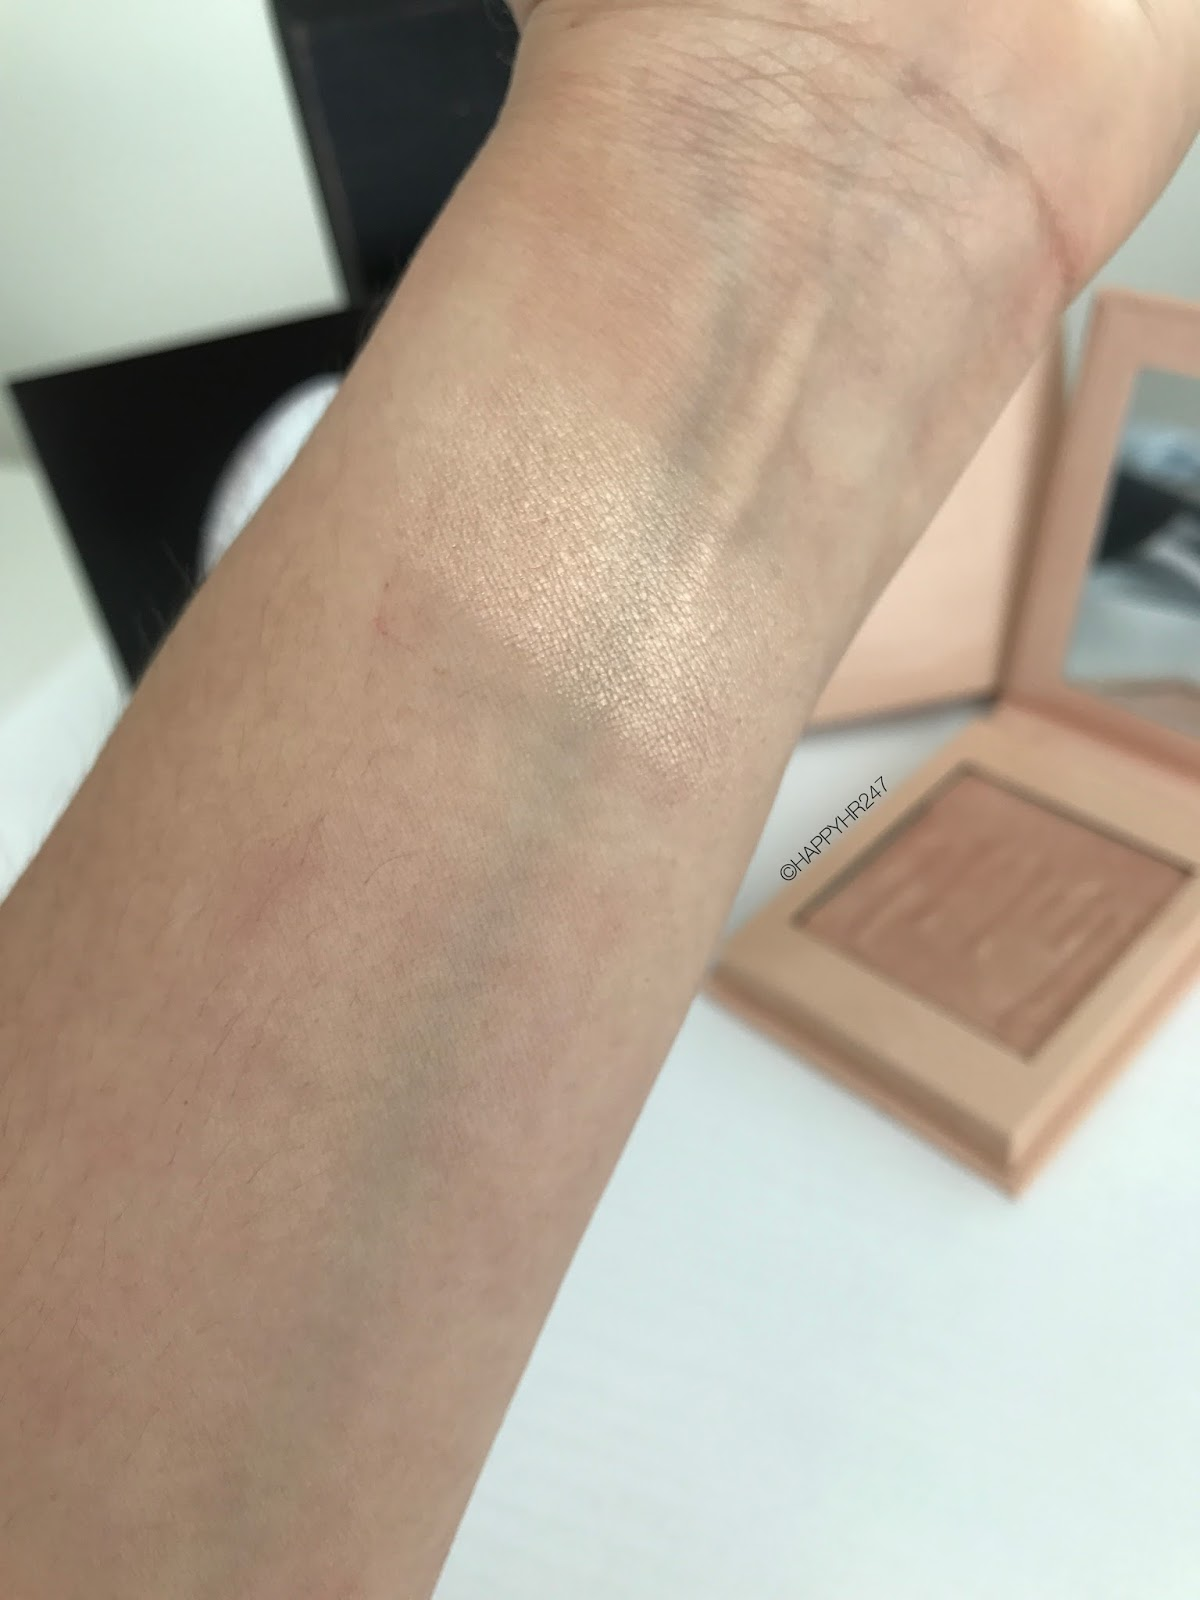 Blush by Kylie Cosmetics #22